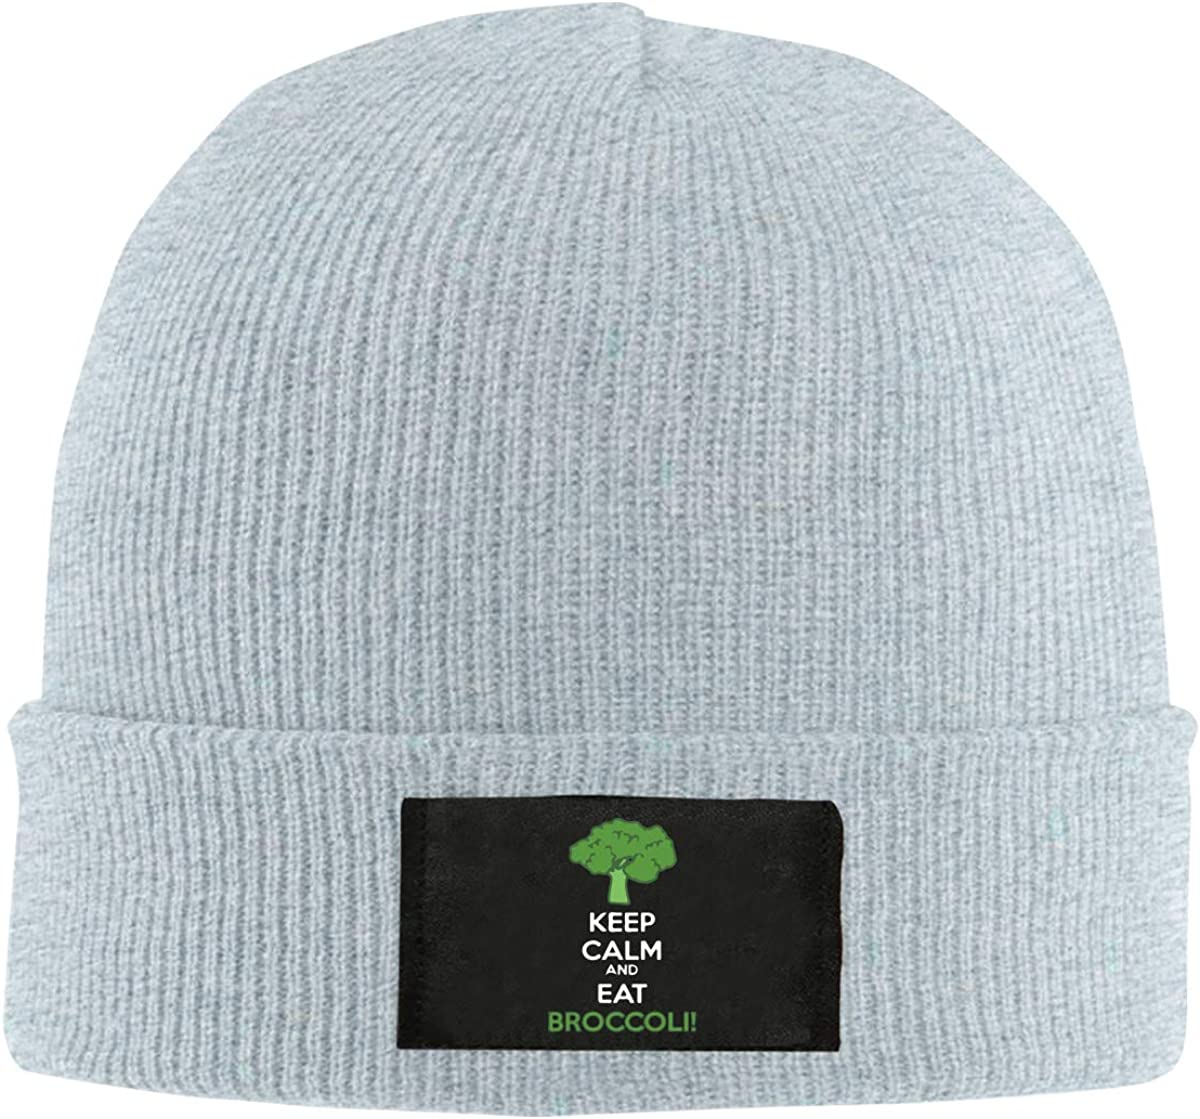 Dee O.STORE Mens Womens Keep Calm and Eat Broccoli Knit Beanie Hats 100/% Acrylic Skull Caps